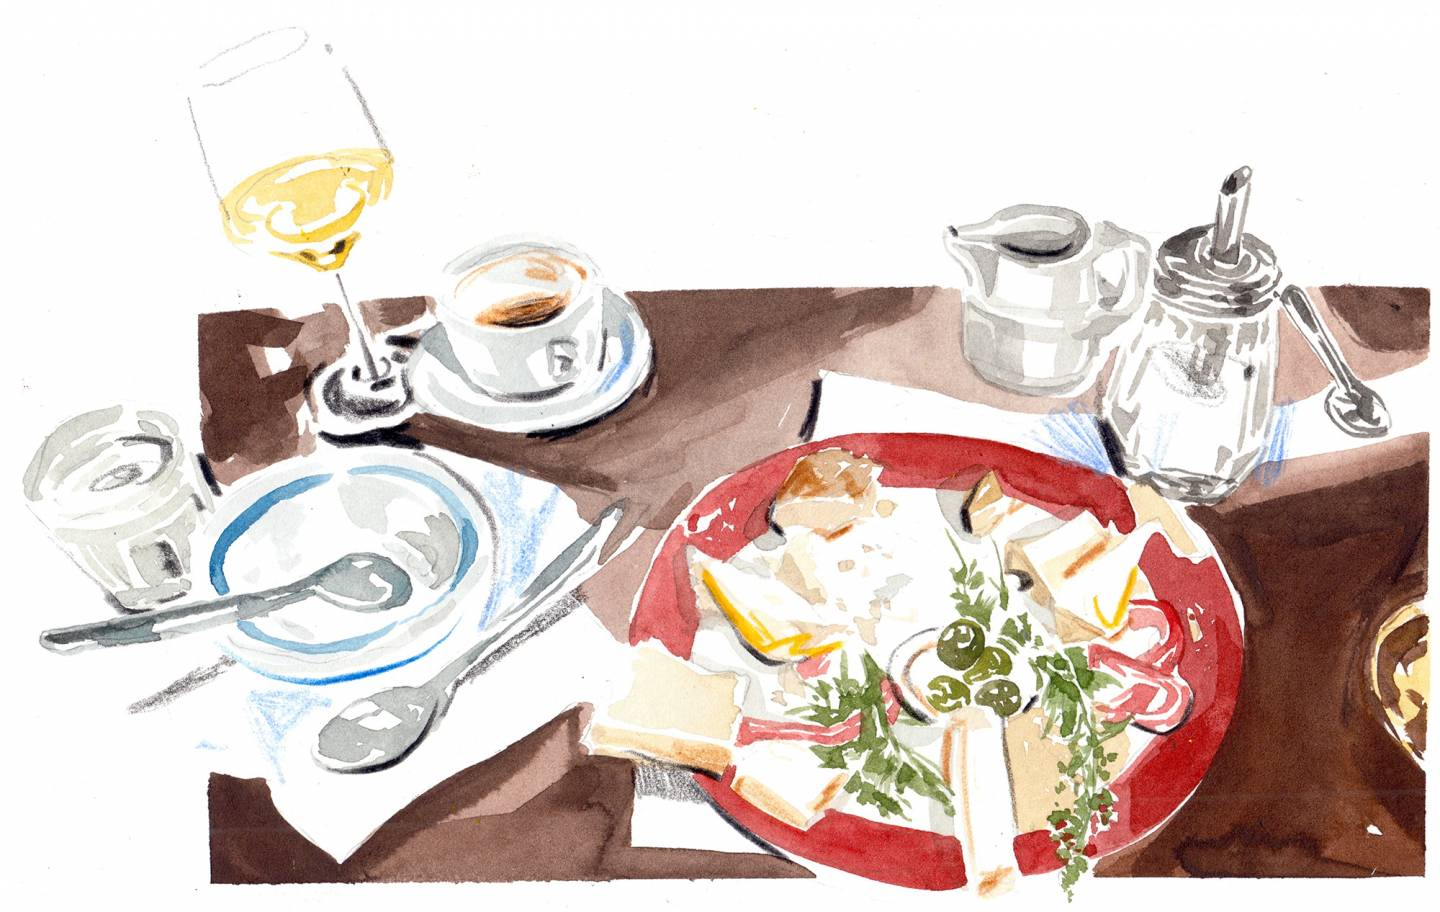 Lindsay | A Taste of Spain: How Tapas Took Over The World | Illustration by Evie Cahir for Lindsay